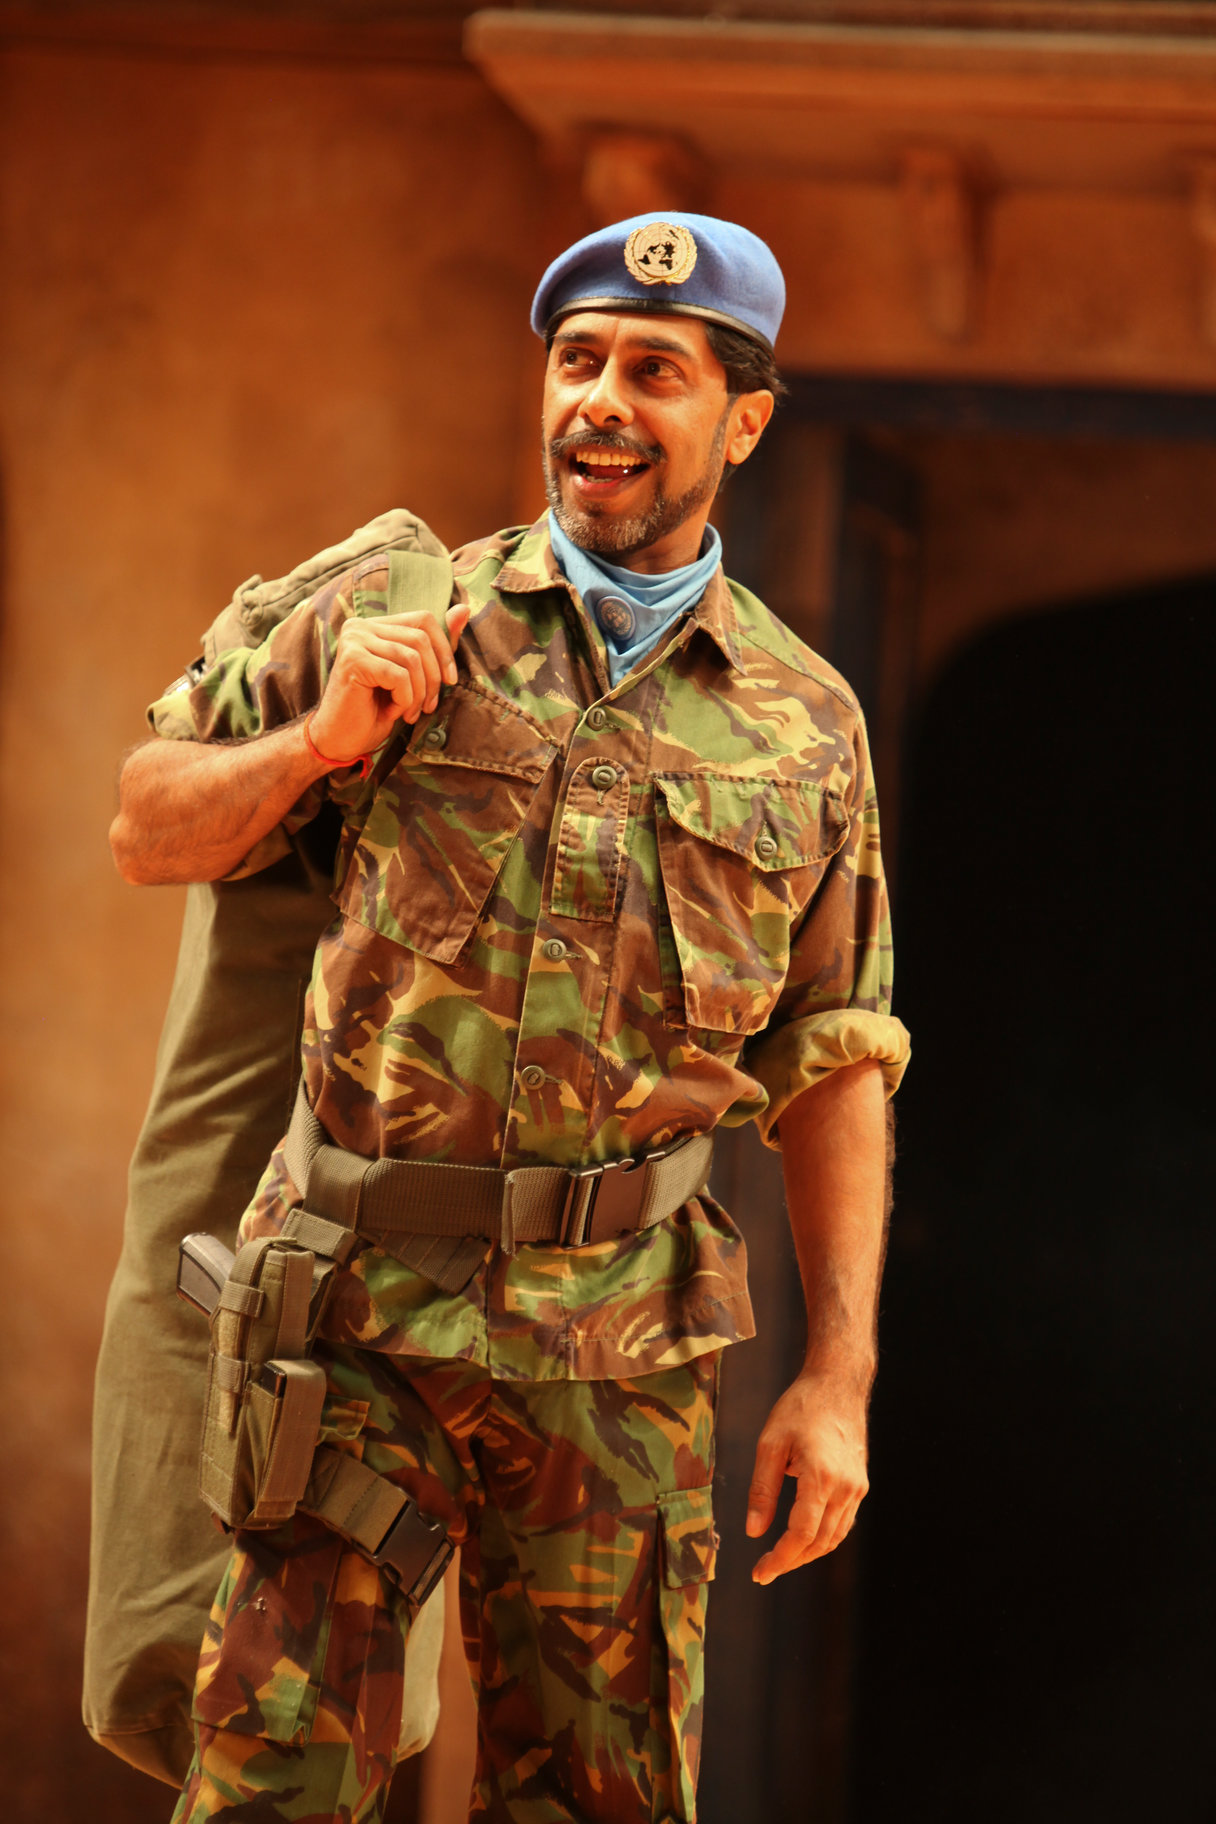 Shiv Grewal as Don Pedro in army fatigues.